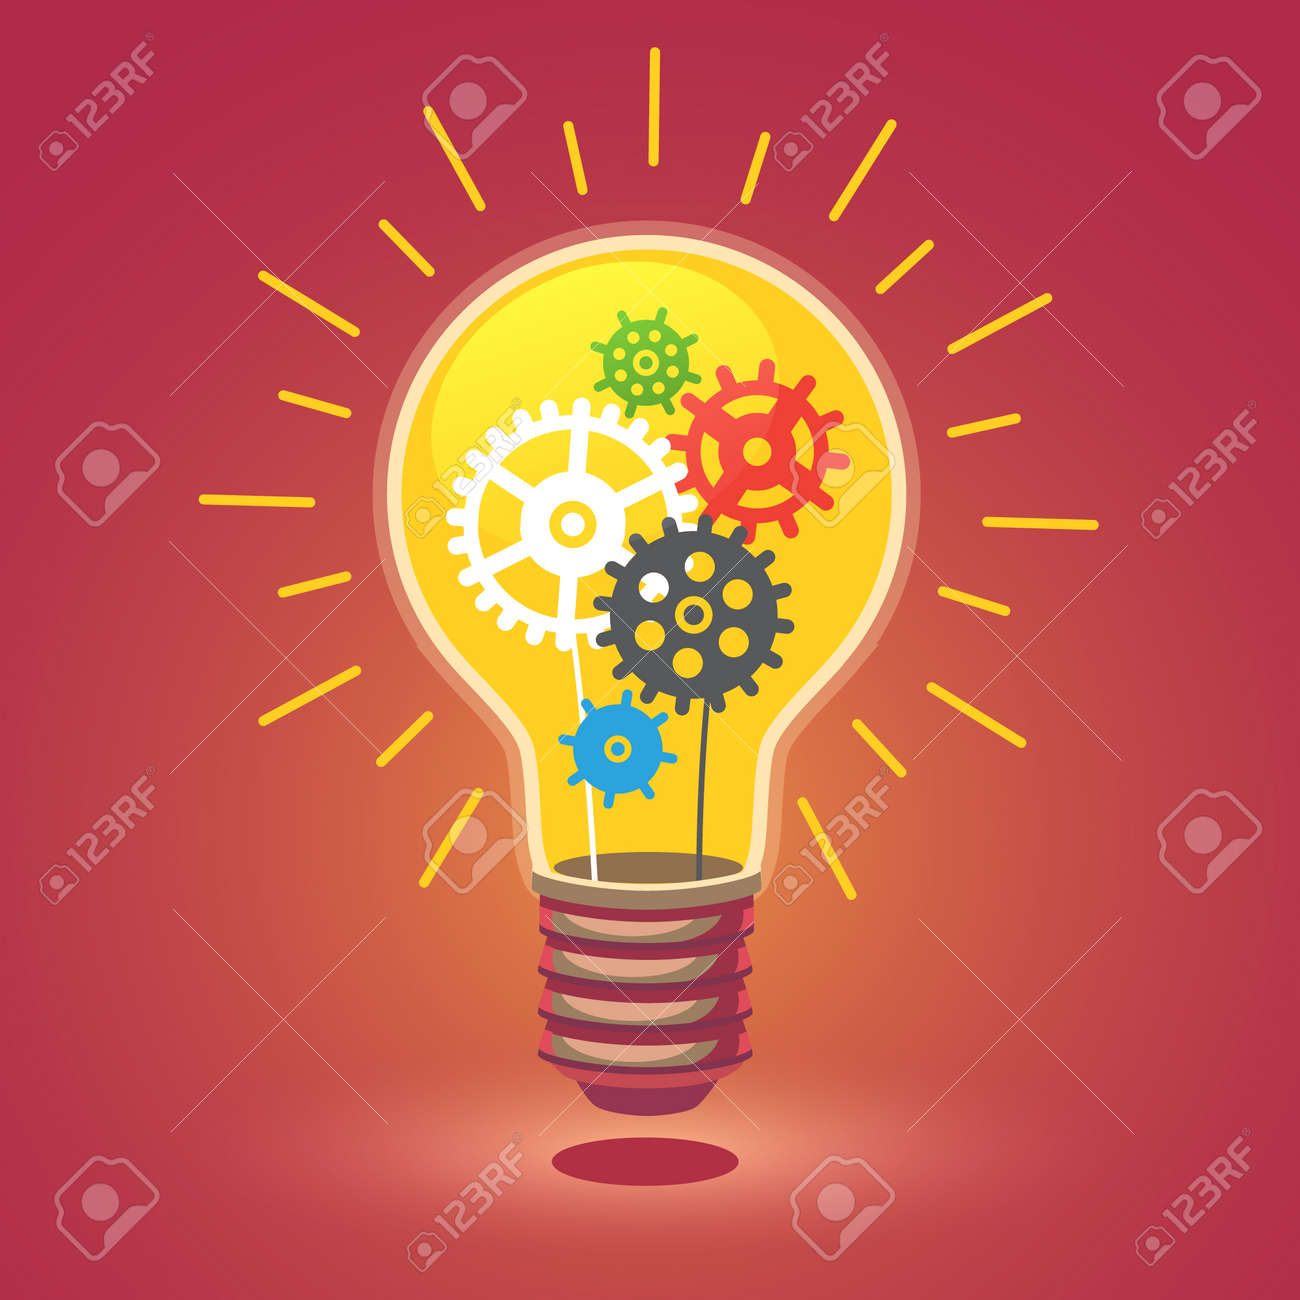 Shining bright idea light bulb with cogs. Flat style vector illustration isolated on white background. - 52901807